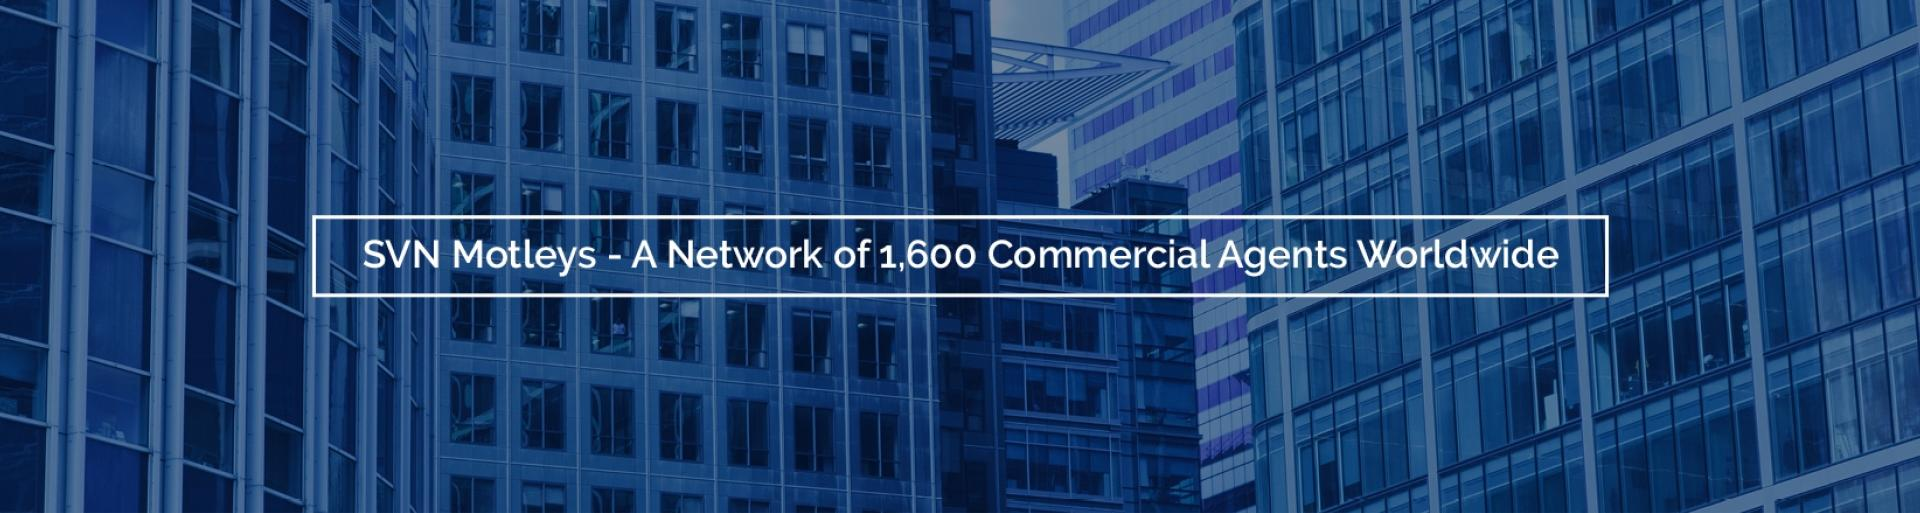 SVN Motleys - A Network of 1,600 Commercial Agents Worldwide